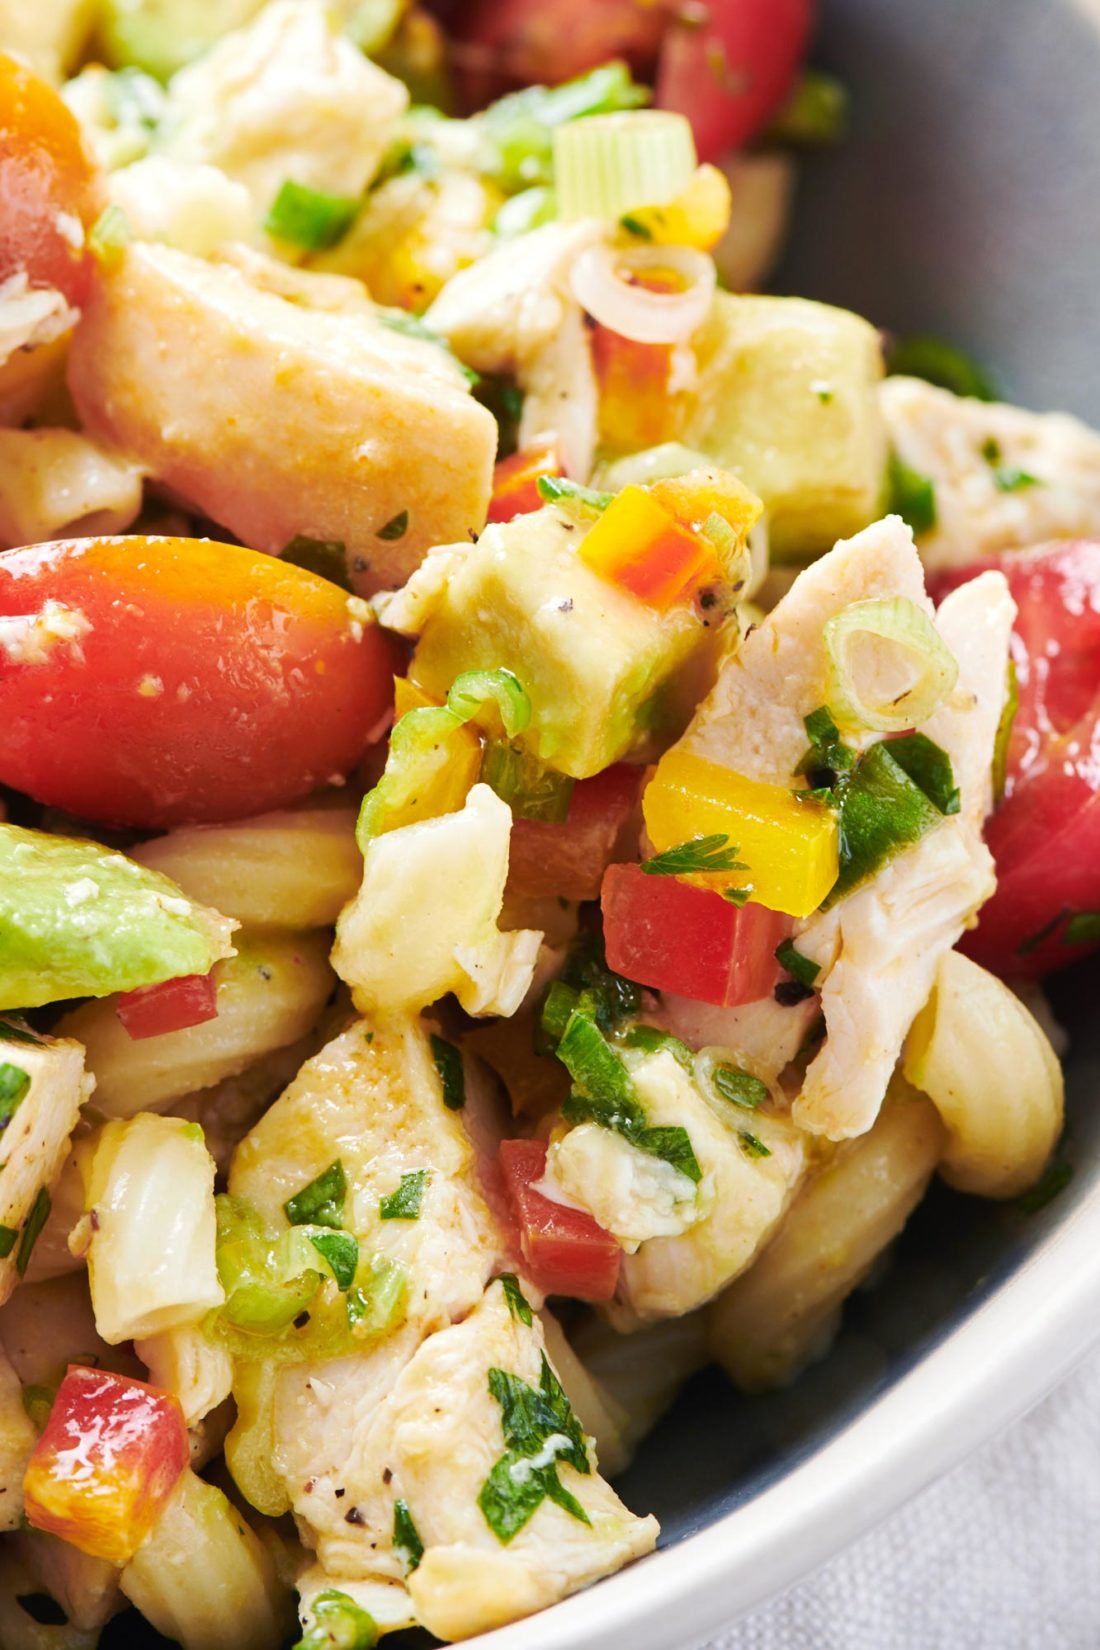 Pasta Salad with Chicken, Avocado and Tomato